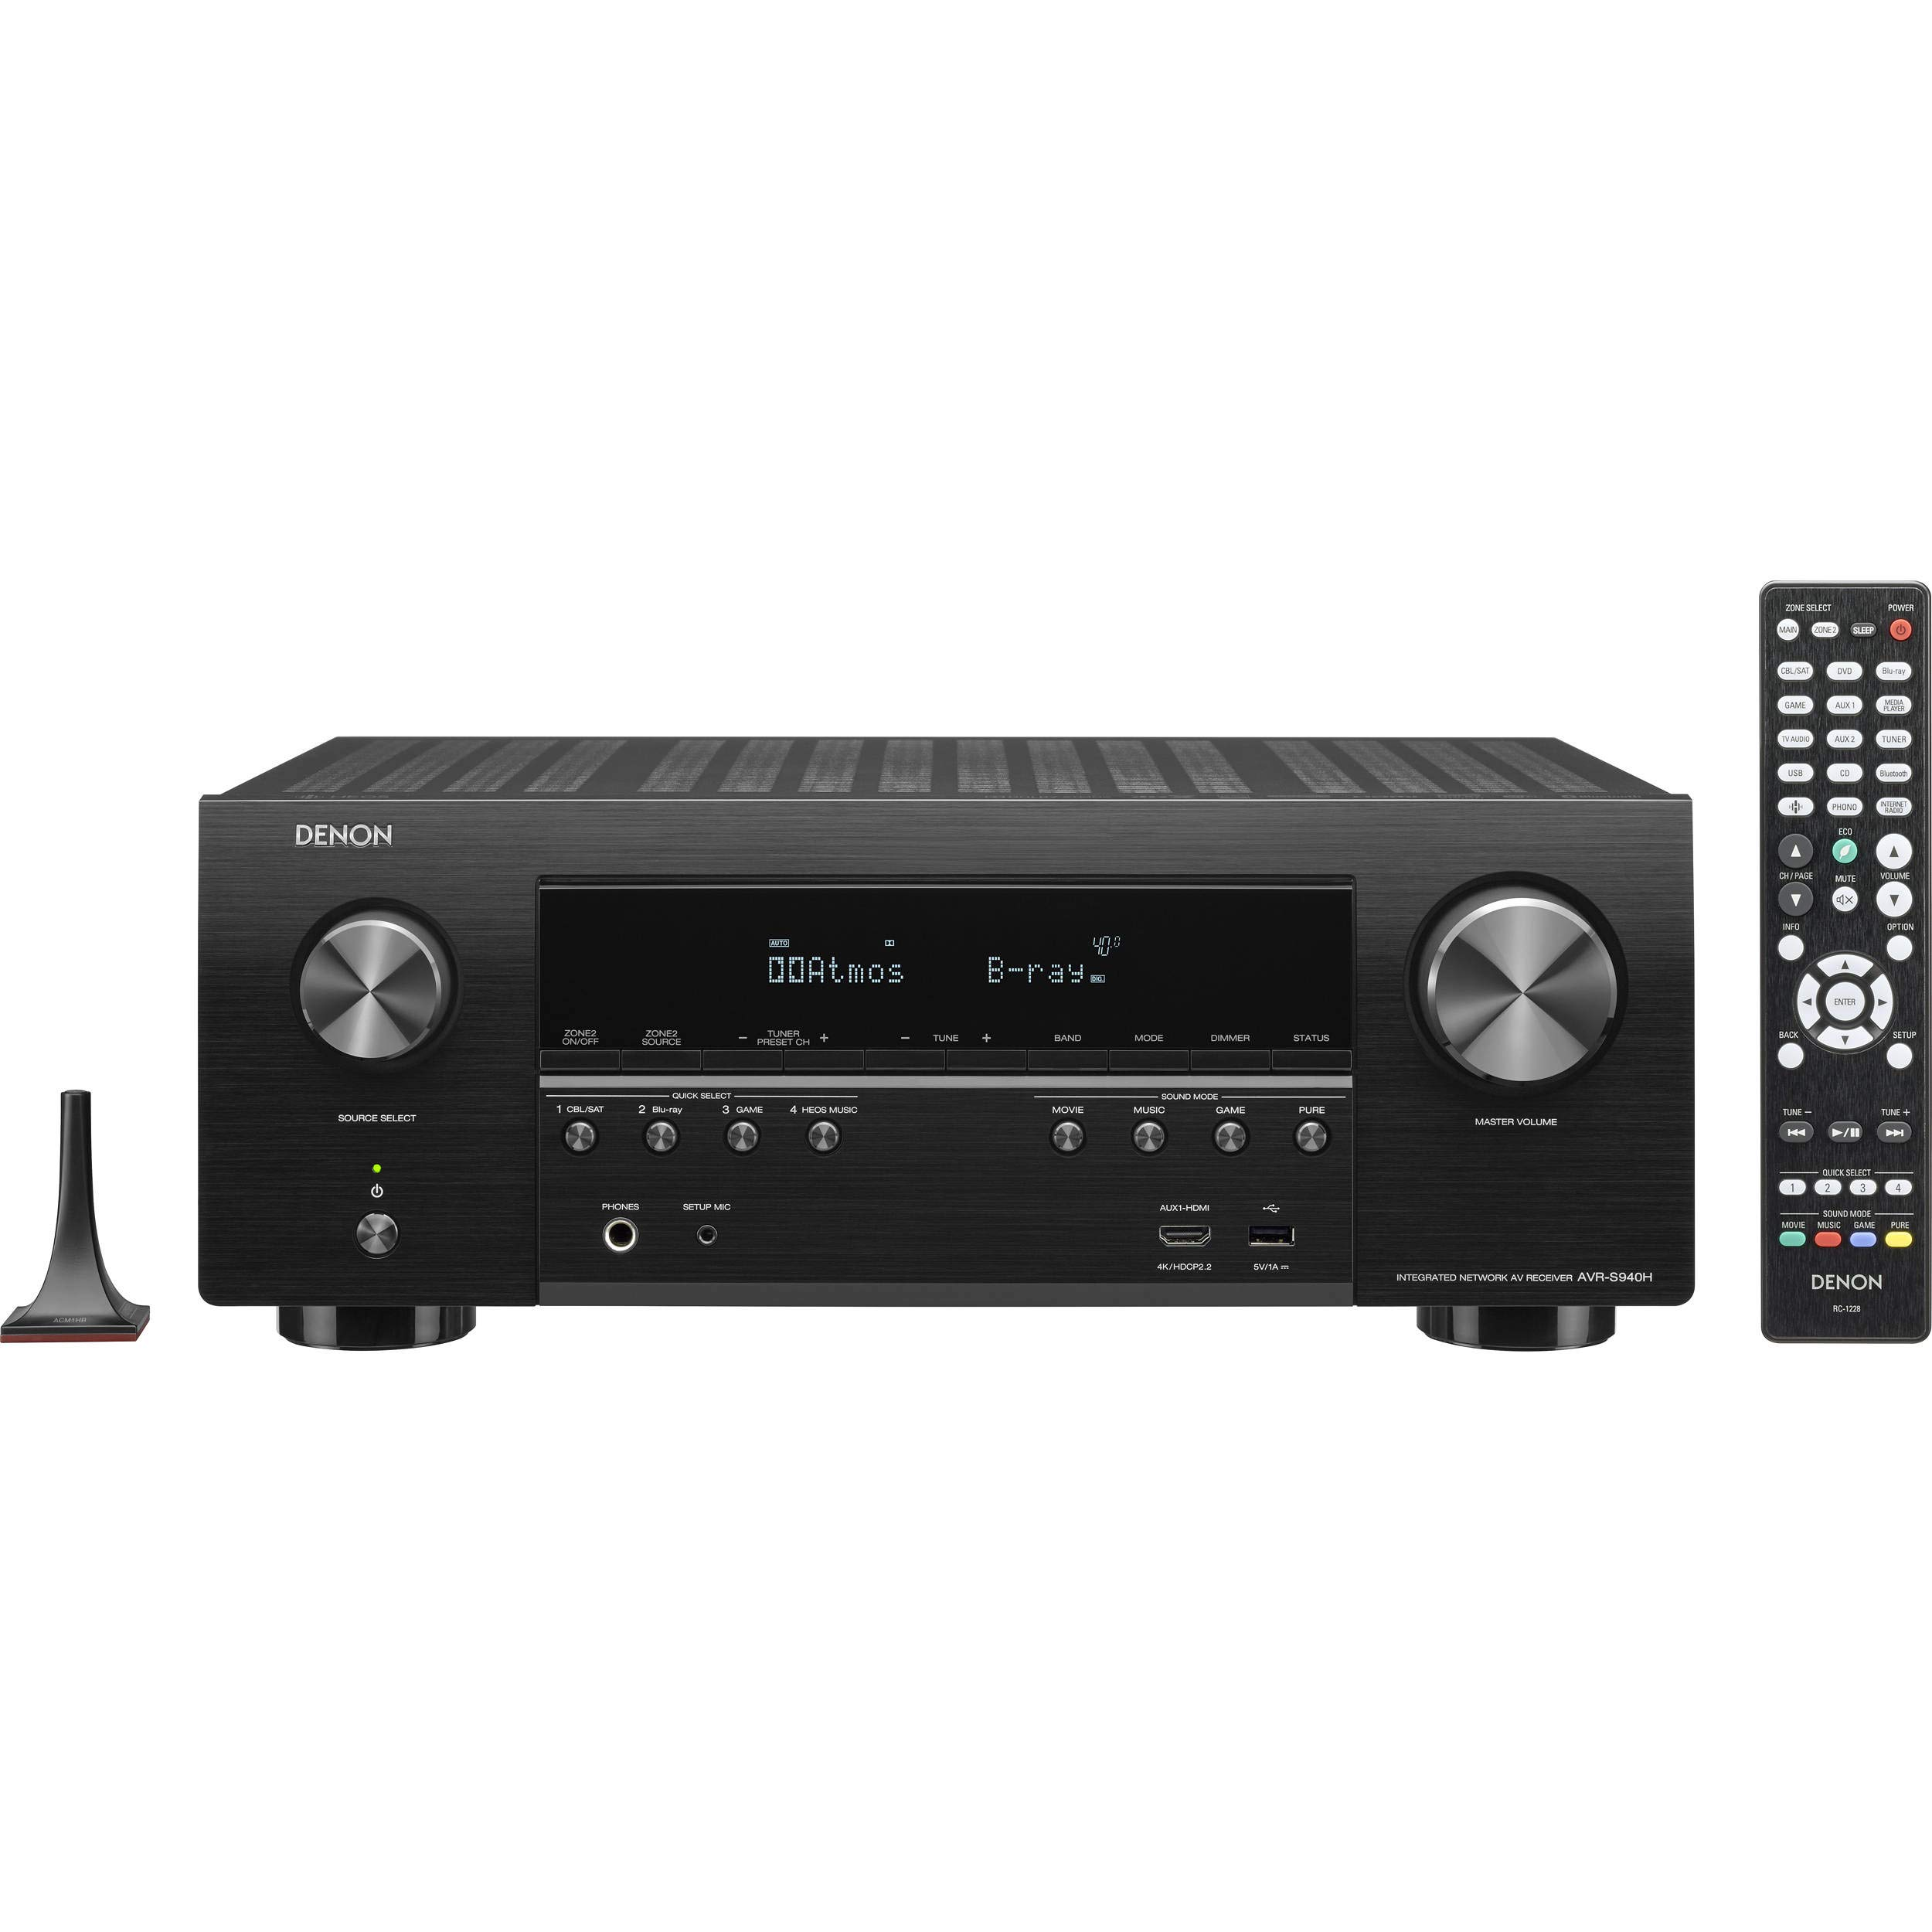 Denon AVR-S940H 7.2 Channel 90W x 7 ch AV Receiver with HEOS (Renewed) by Denon